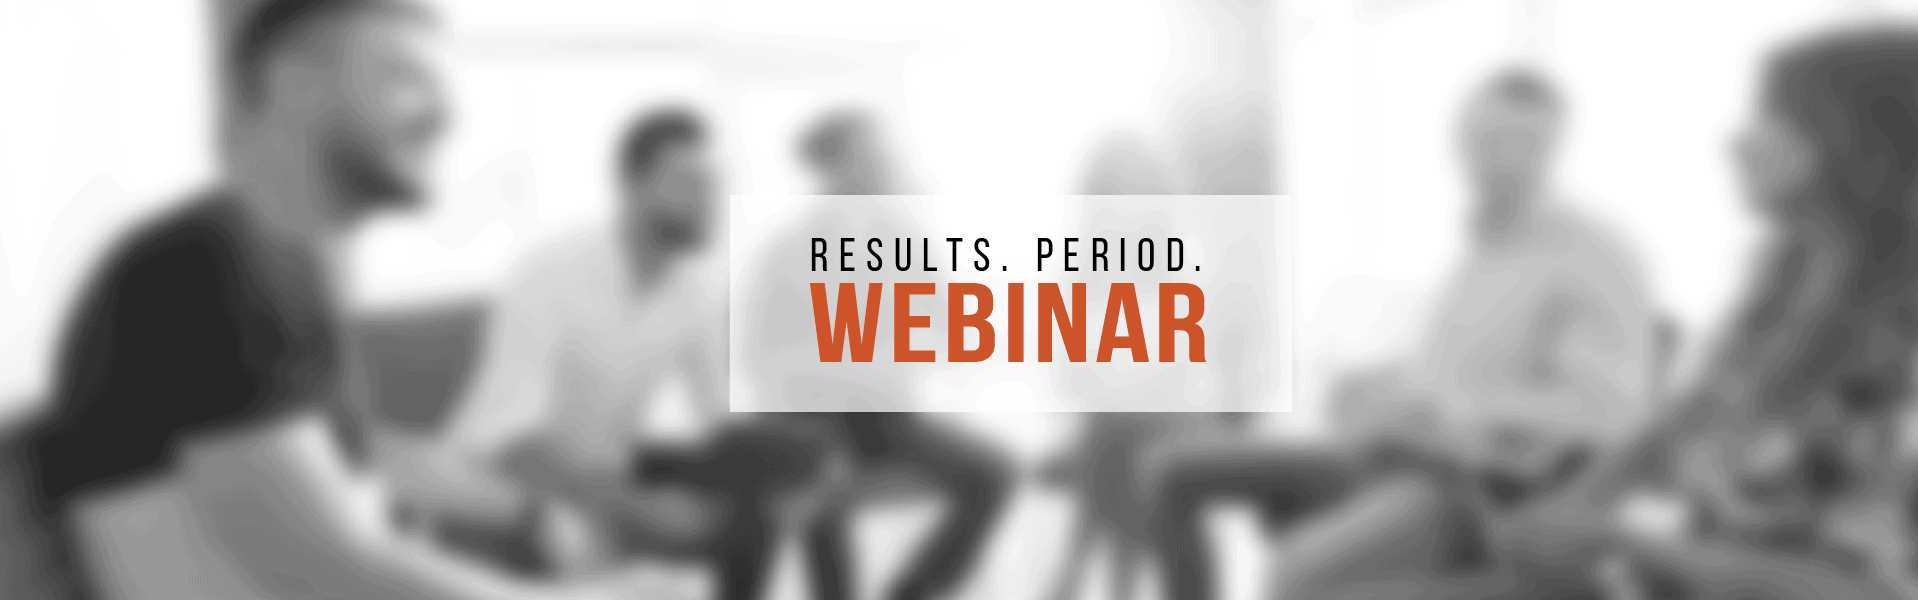 Results Period, Results. Period., Webinar, Rhapsody Strategies, Business Coach, Business Coaching